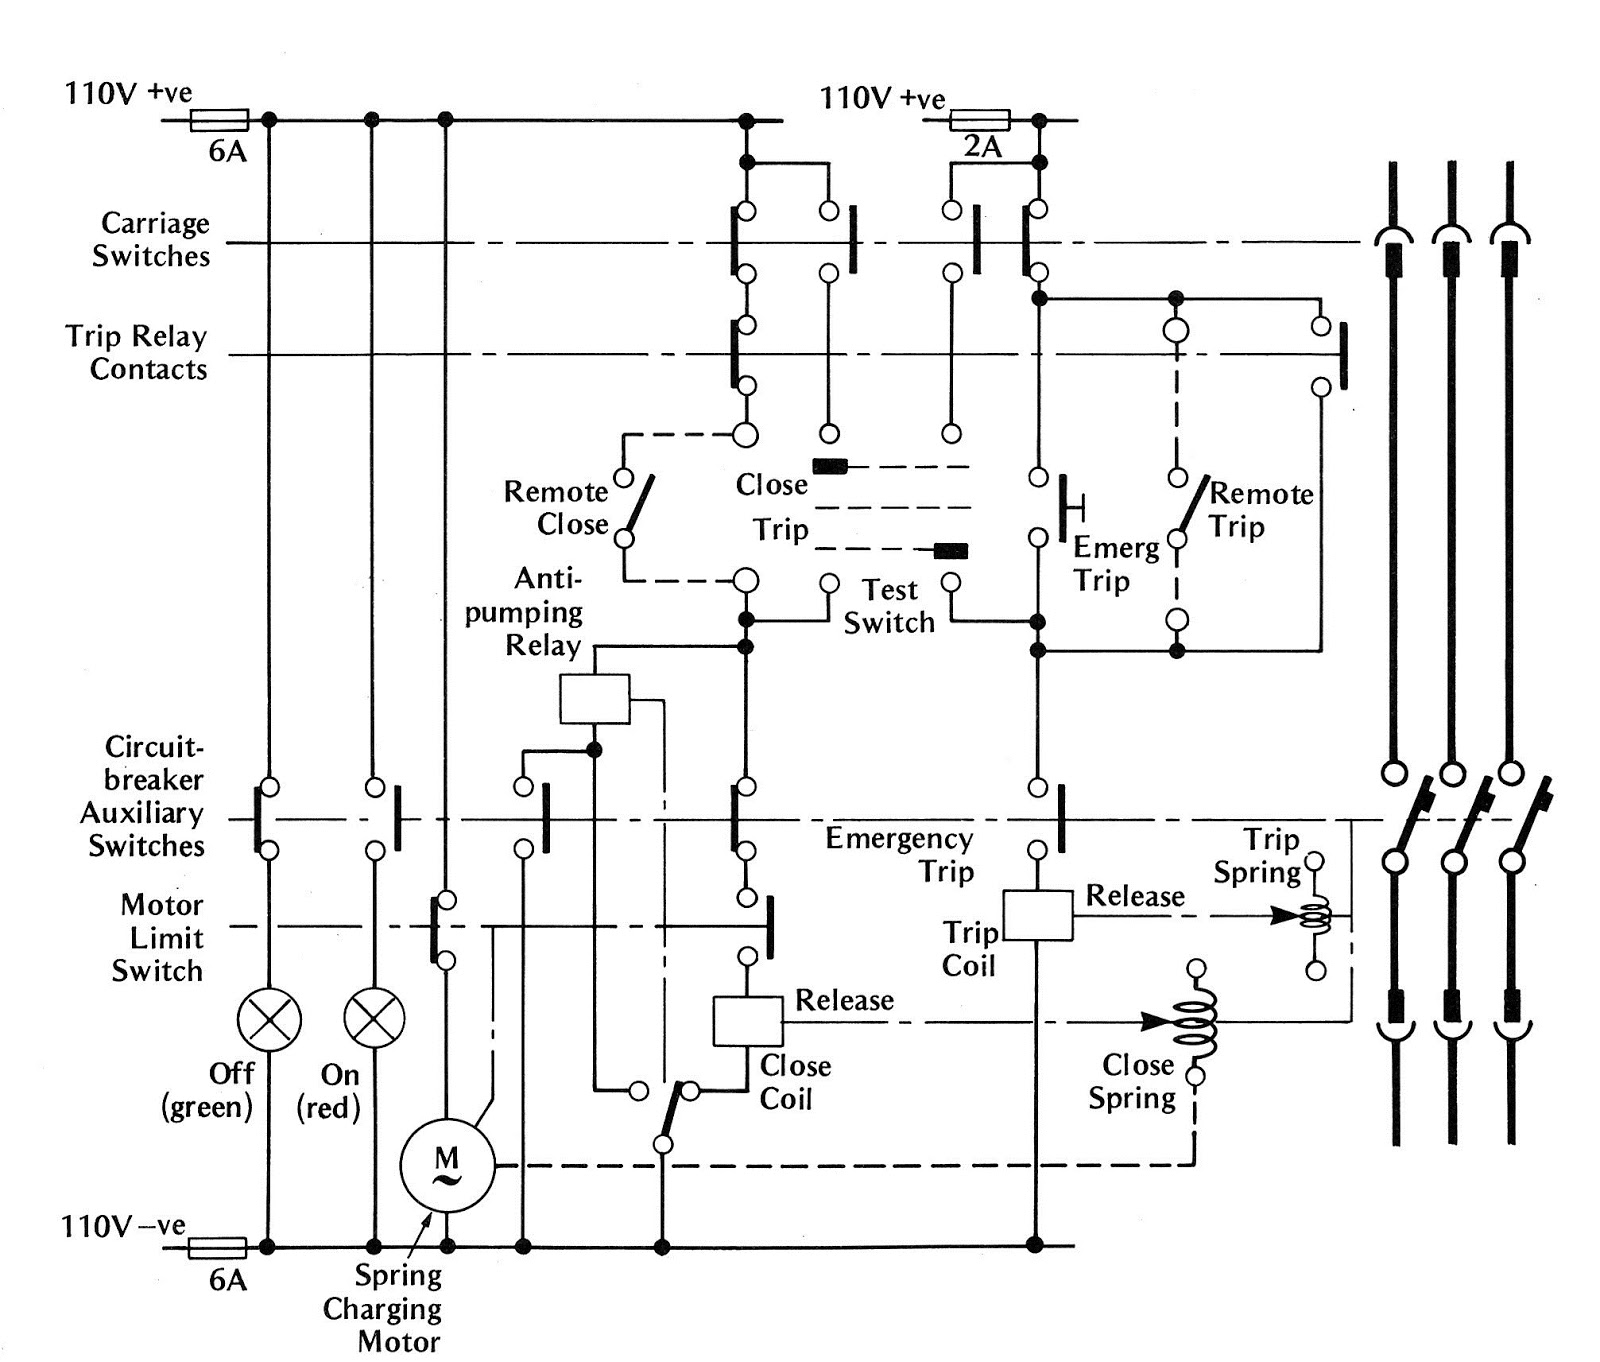 Anti Pumping Relay Circuit Diagram Index 20 Sensor Seekiccom Engineering Photosvideos And Articels Search Engine